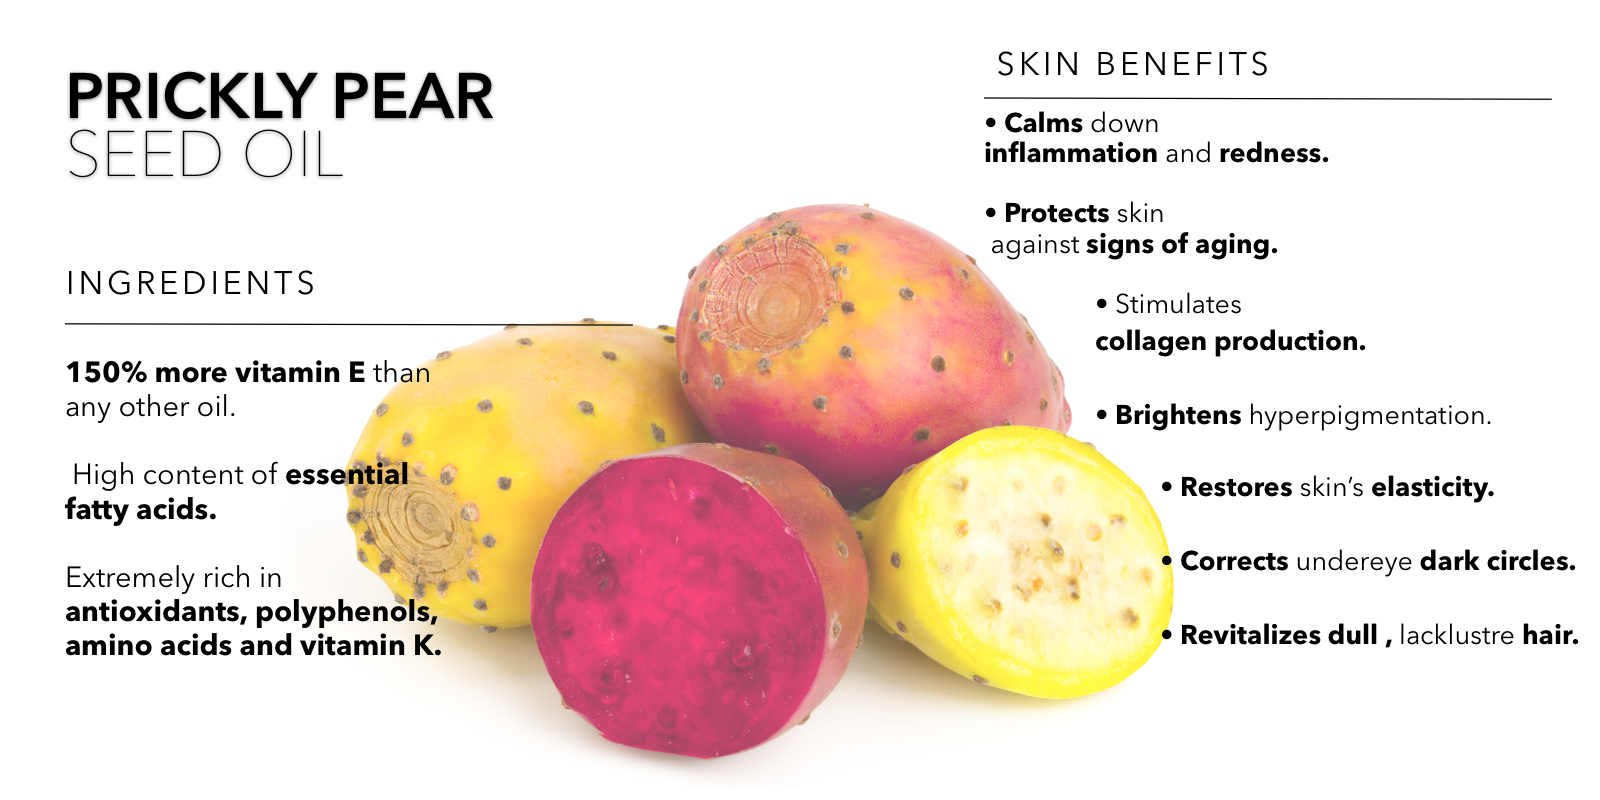 Beauty Nut Prickly Pear Seed Oil infographic